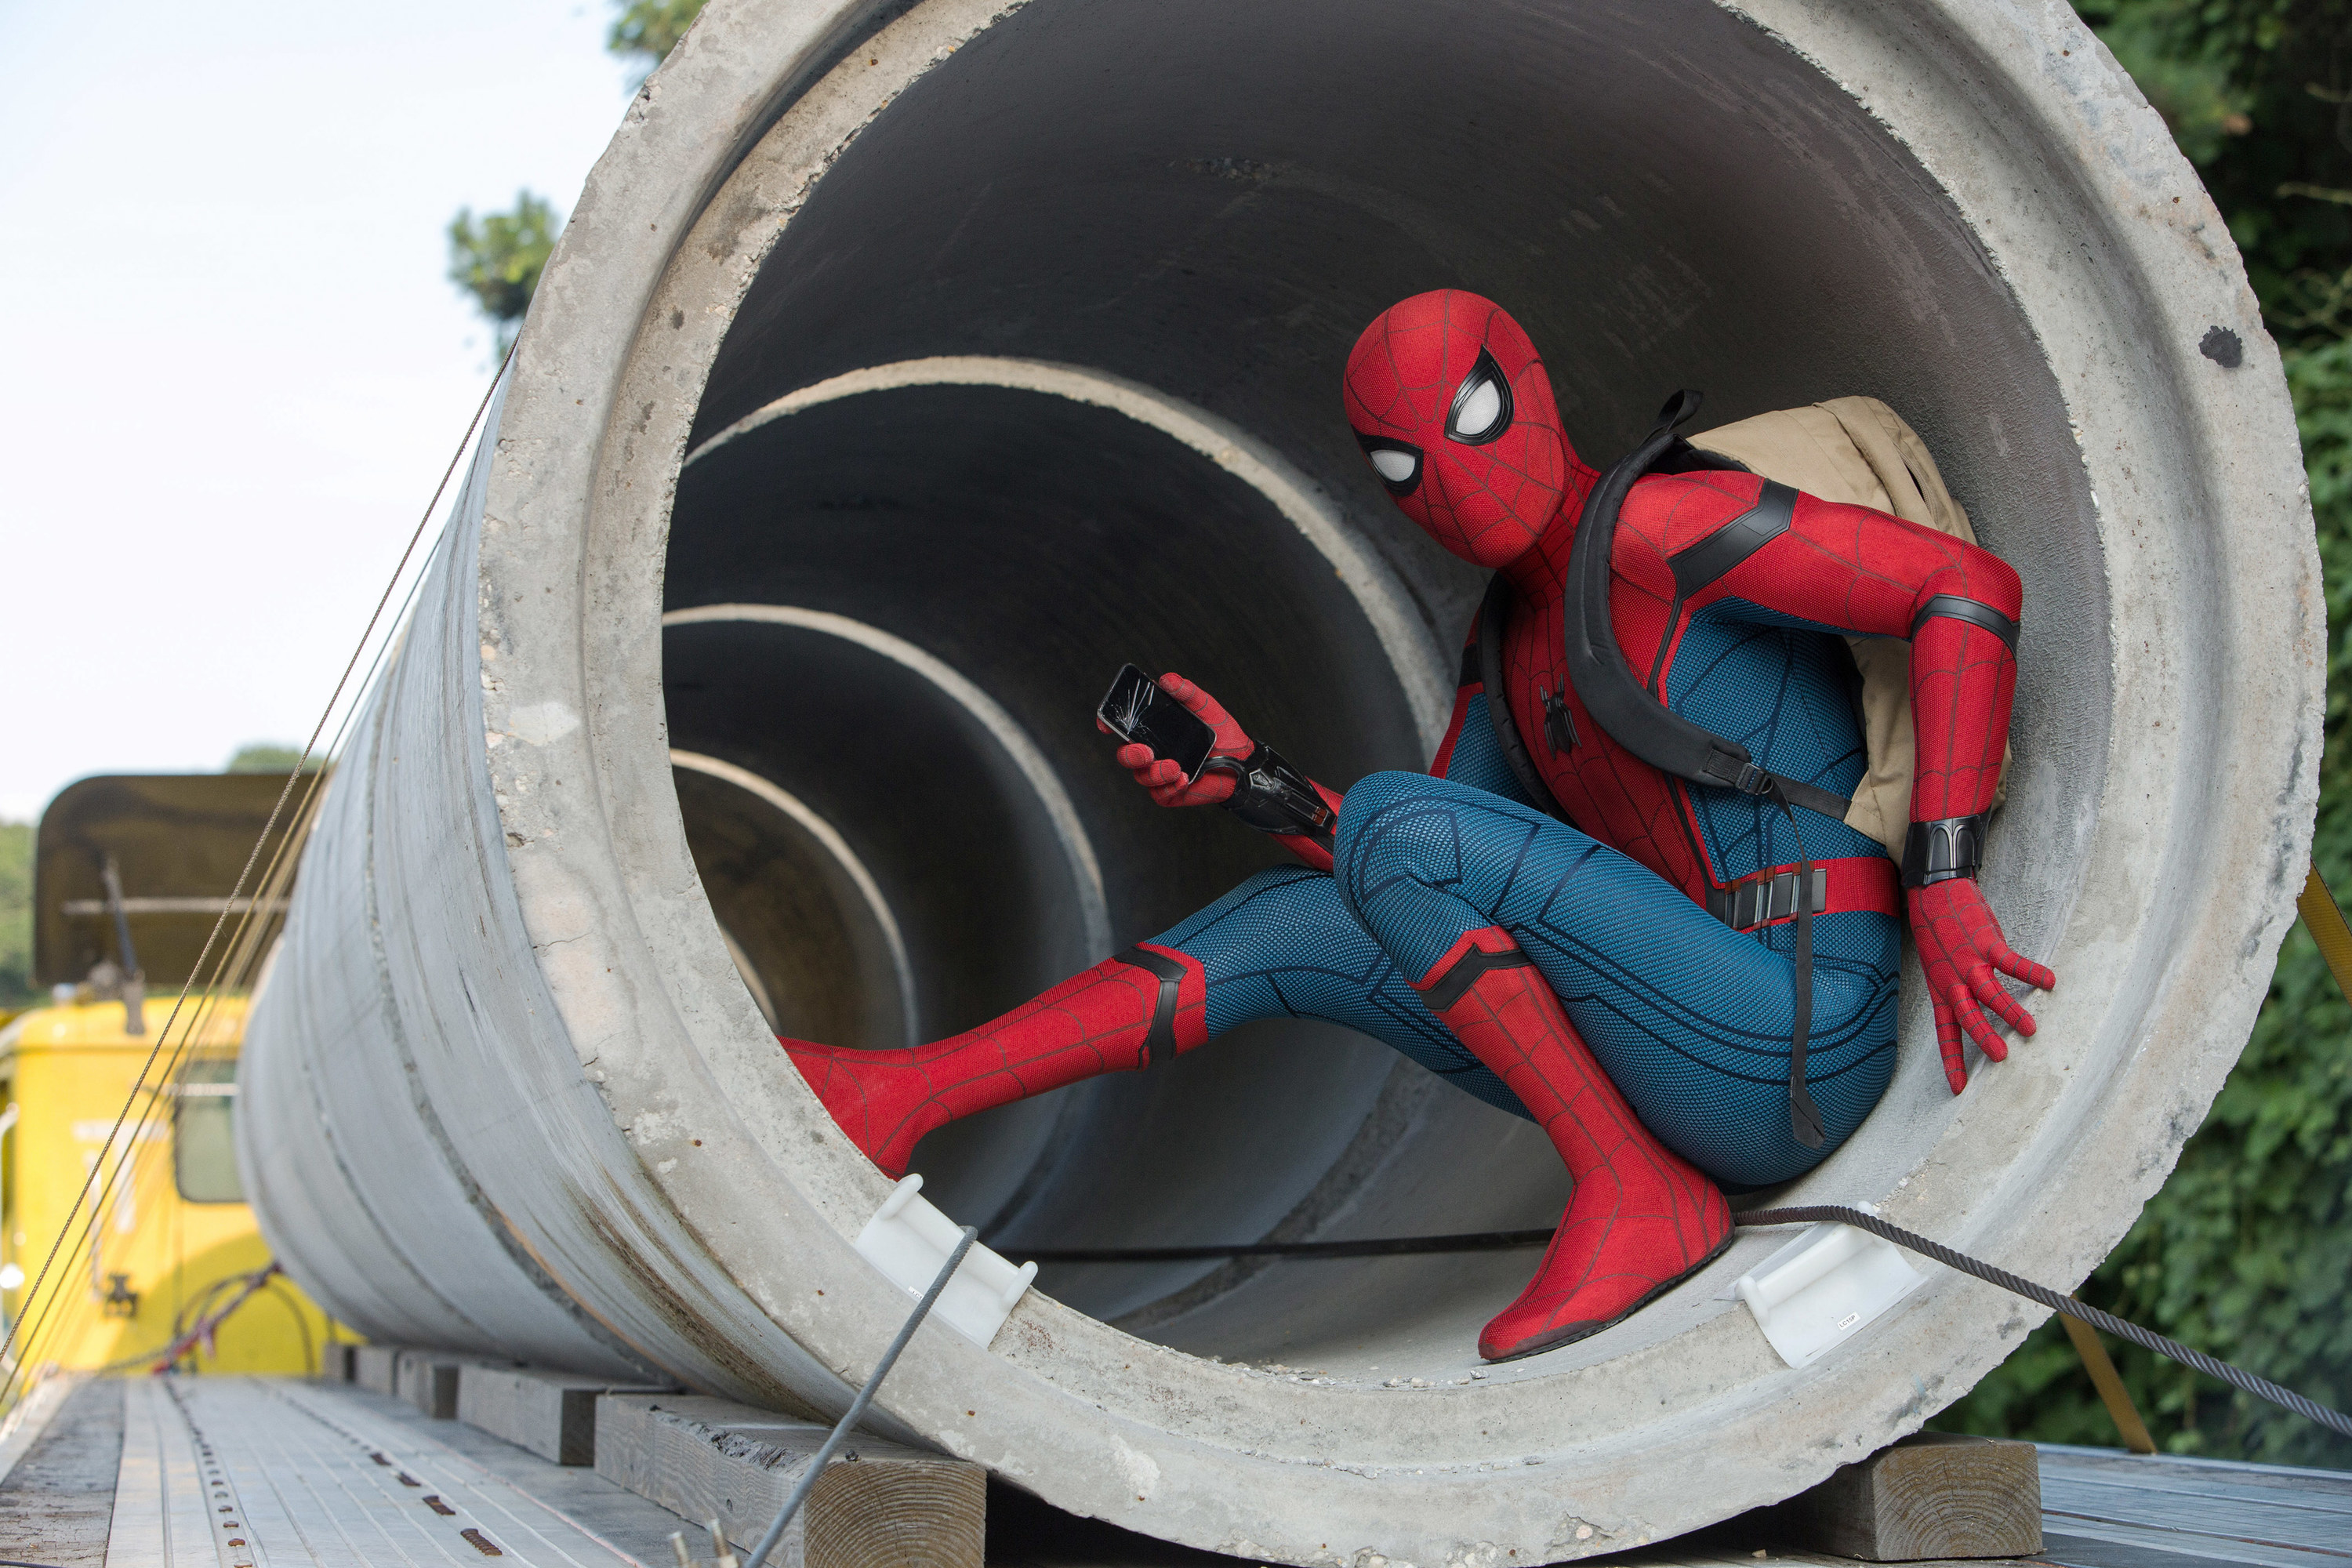 Spider-Man hiding in a large industrial pipe